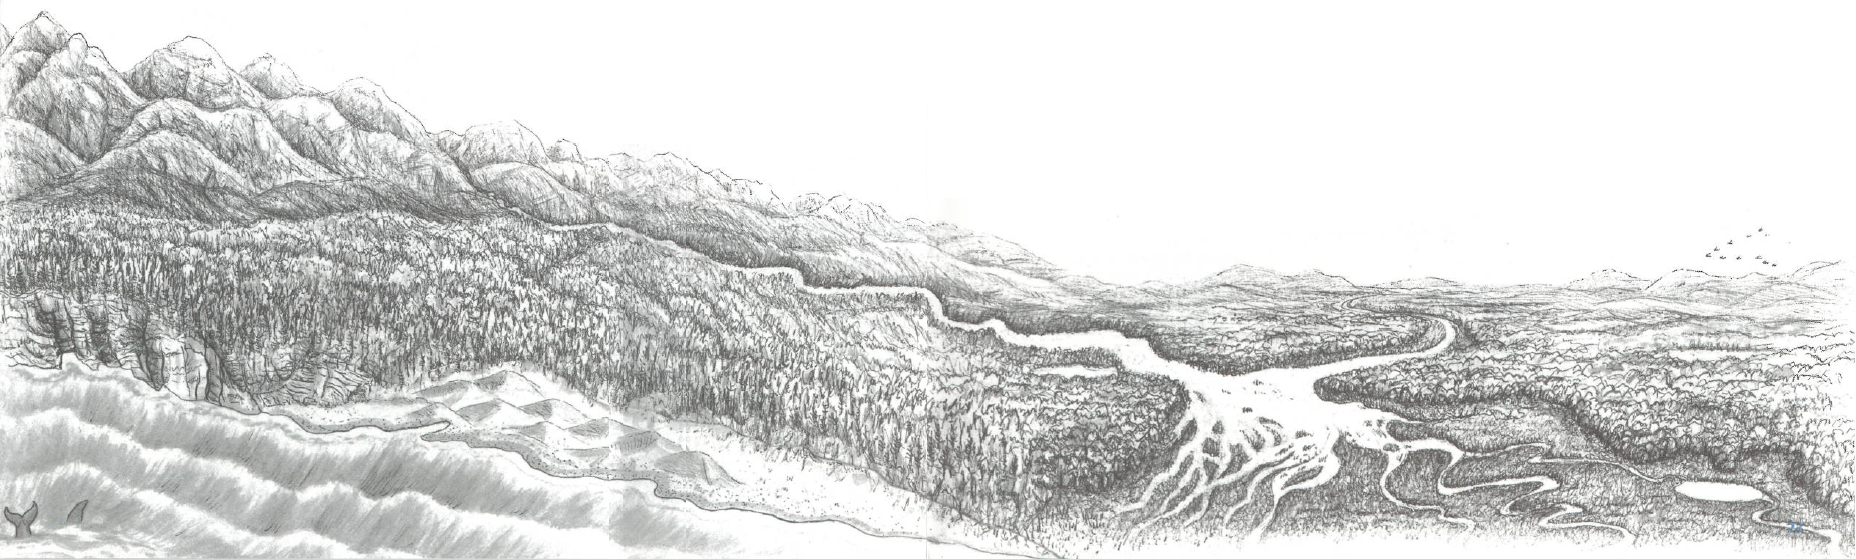 Illustration of how water runs off mountains